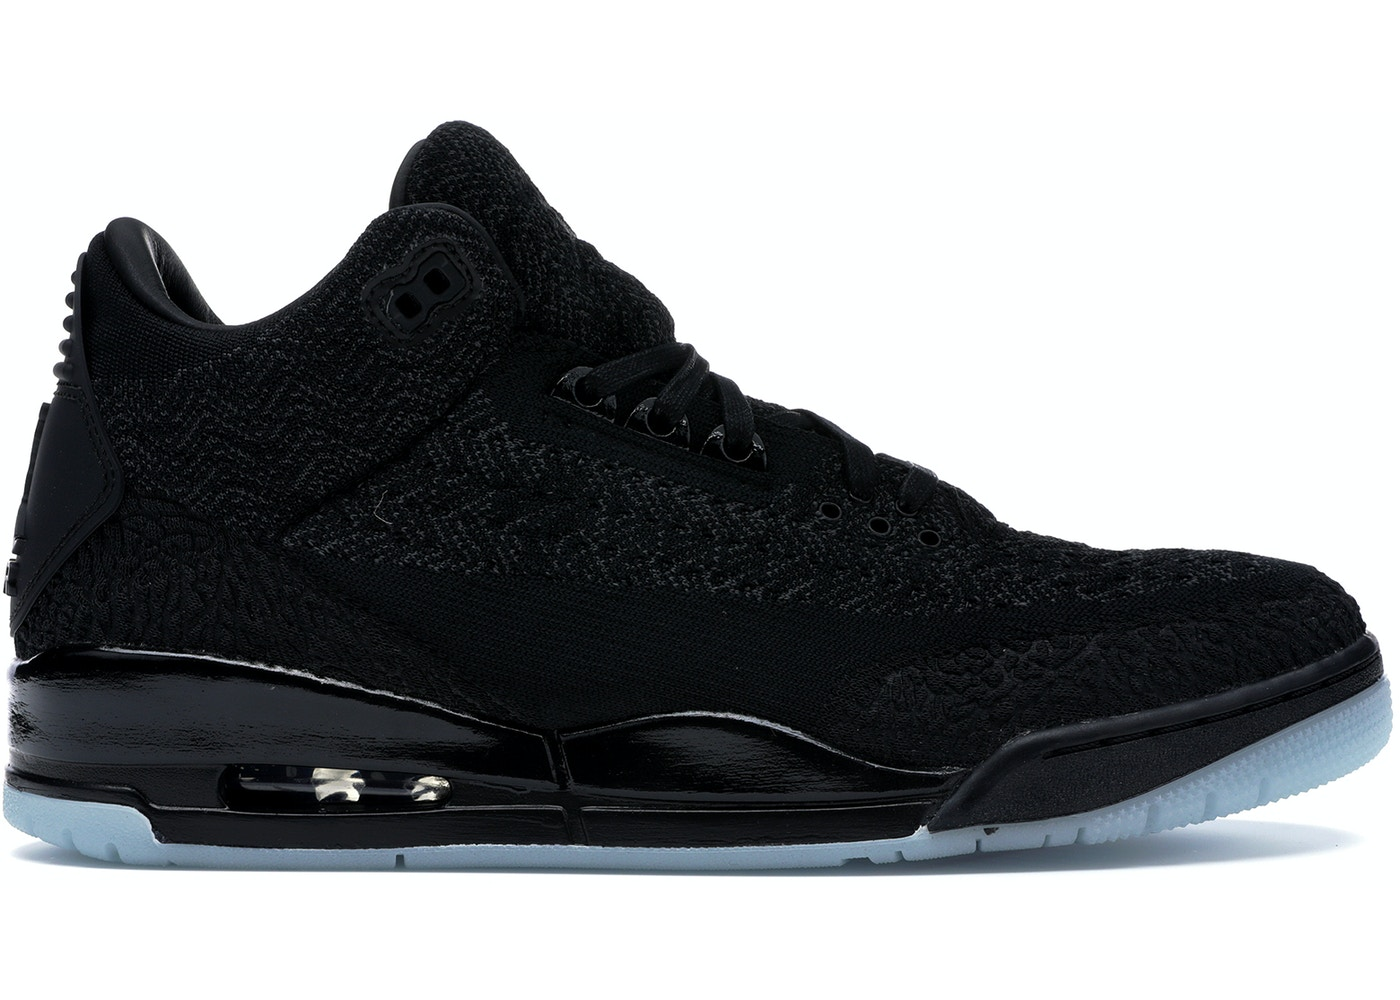 competitive price 8d752 e4fa2 Jordan 3 Retro Flyknit Black